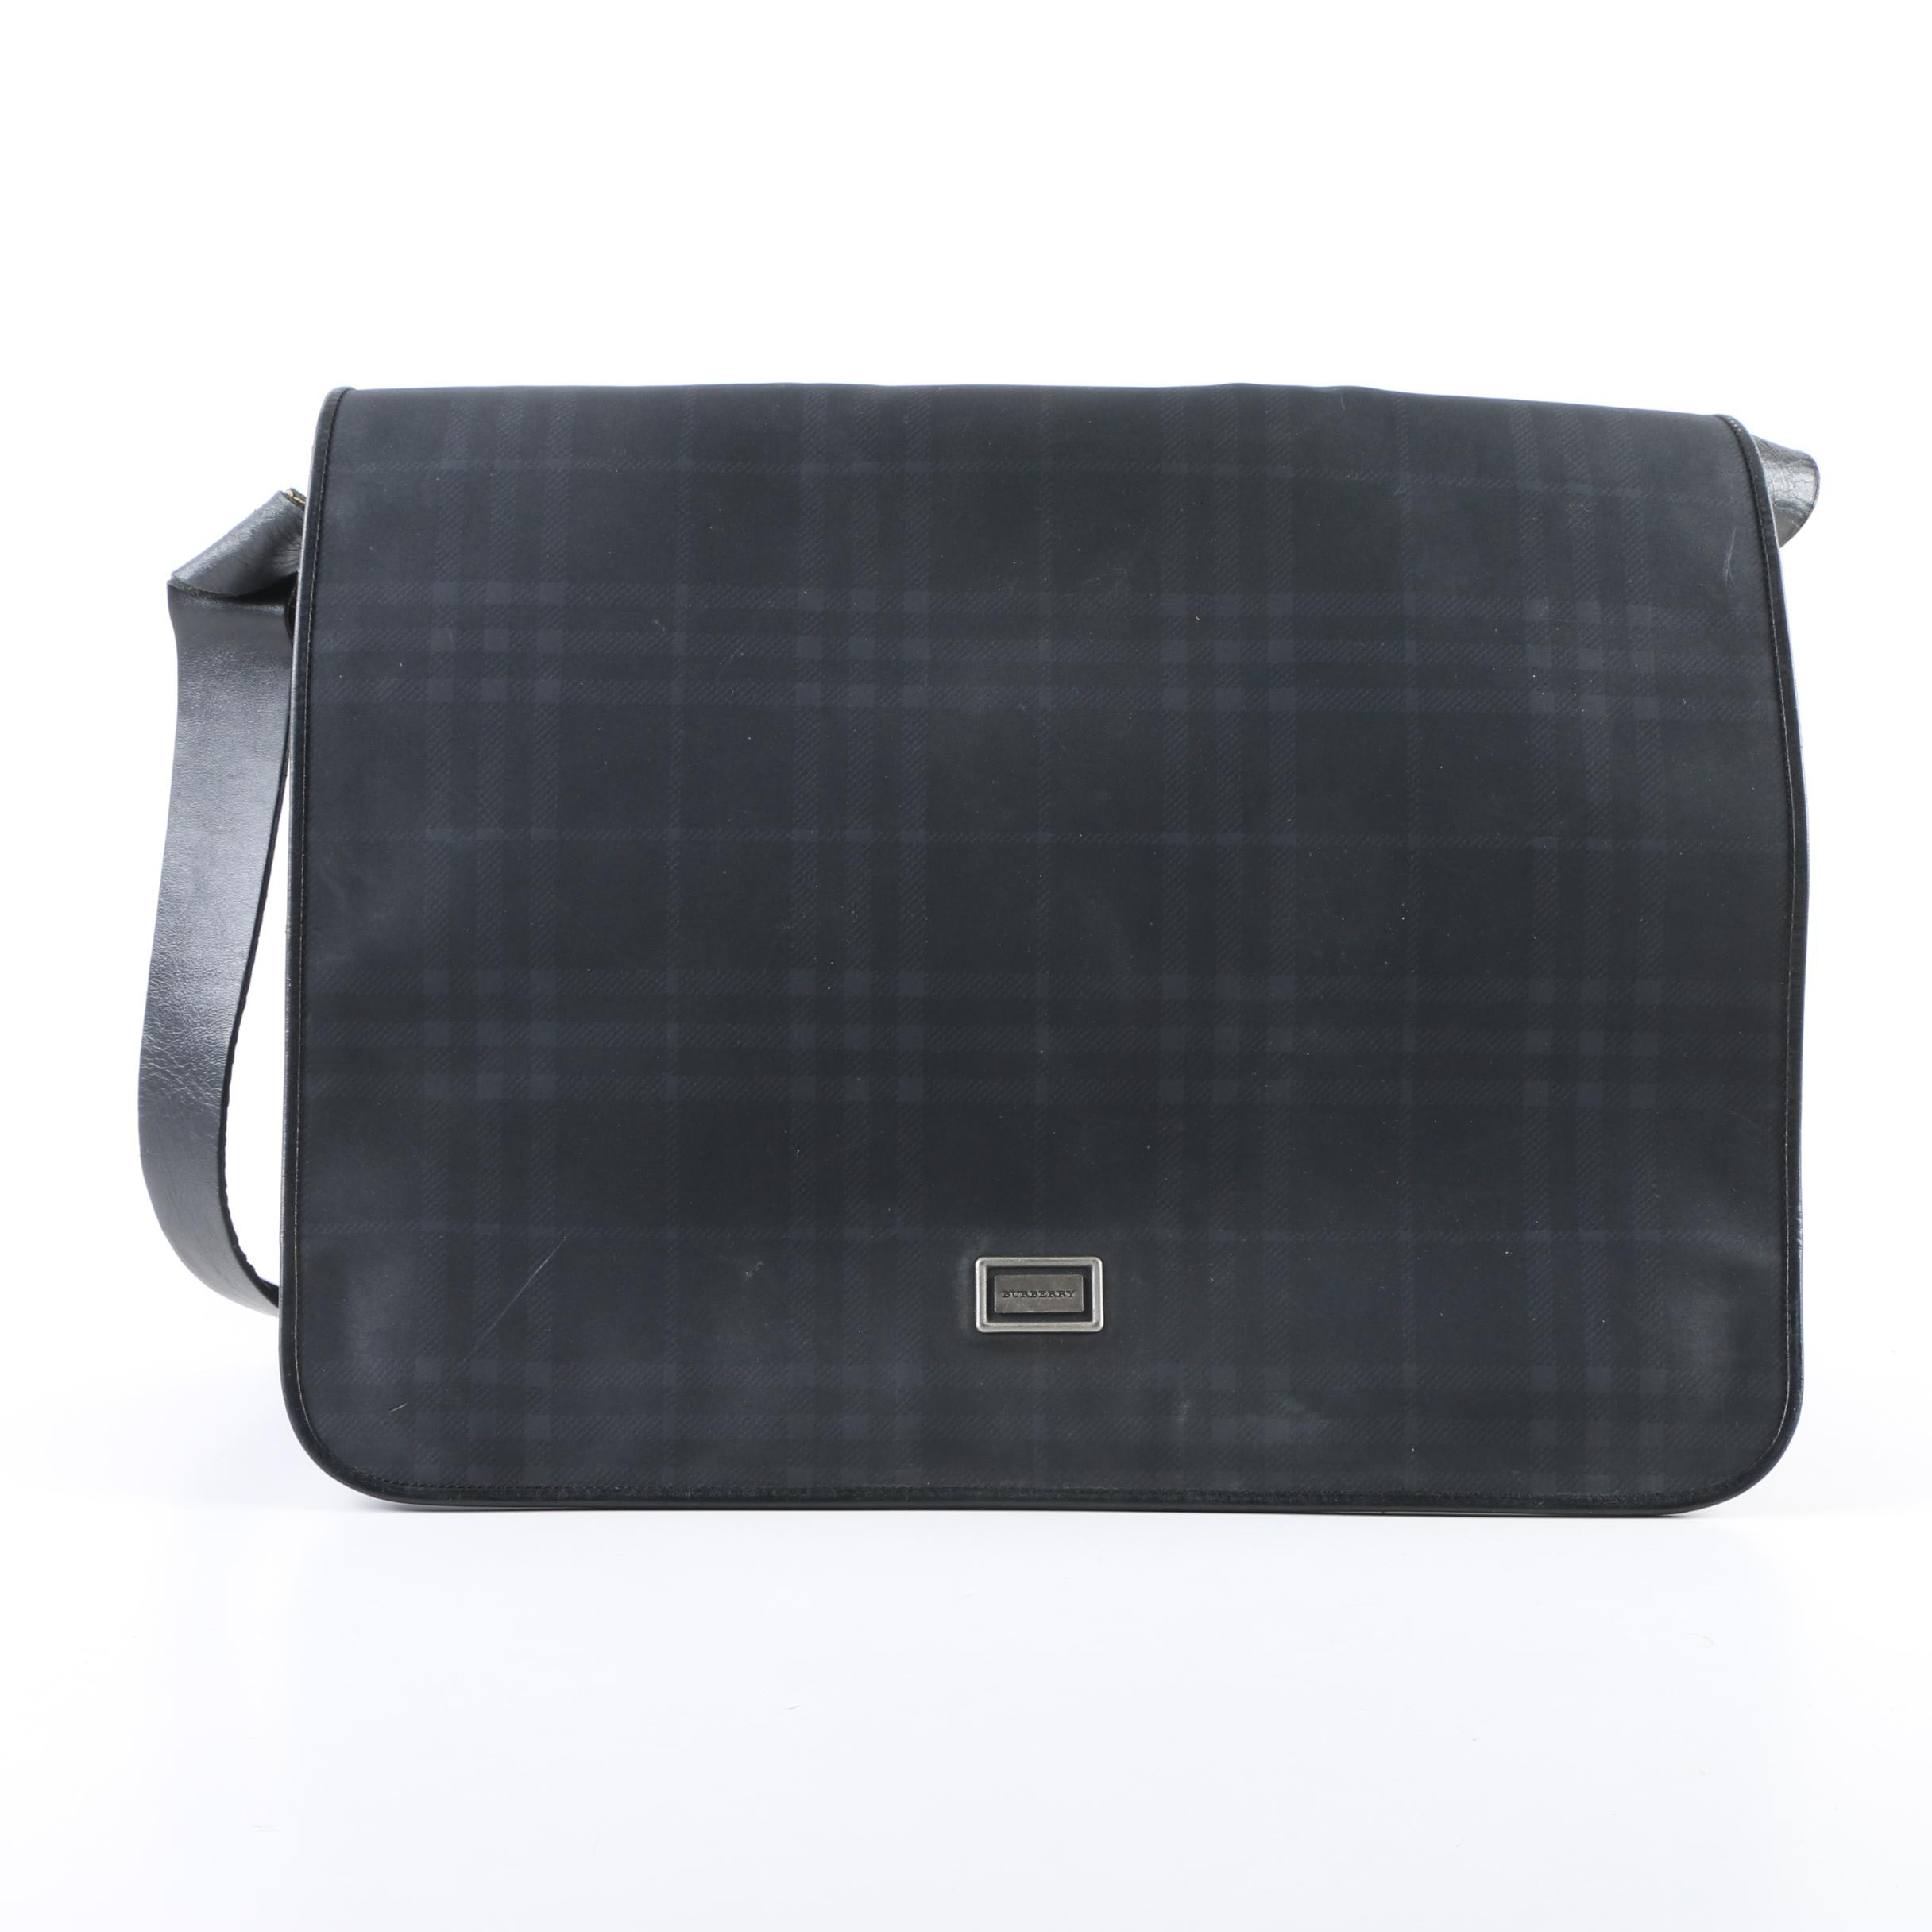 Burberry London Plaid Messenger Bag in Midnight Blue